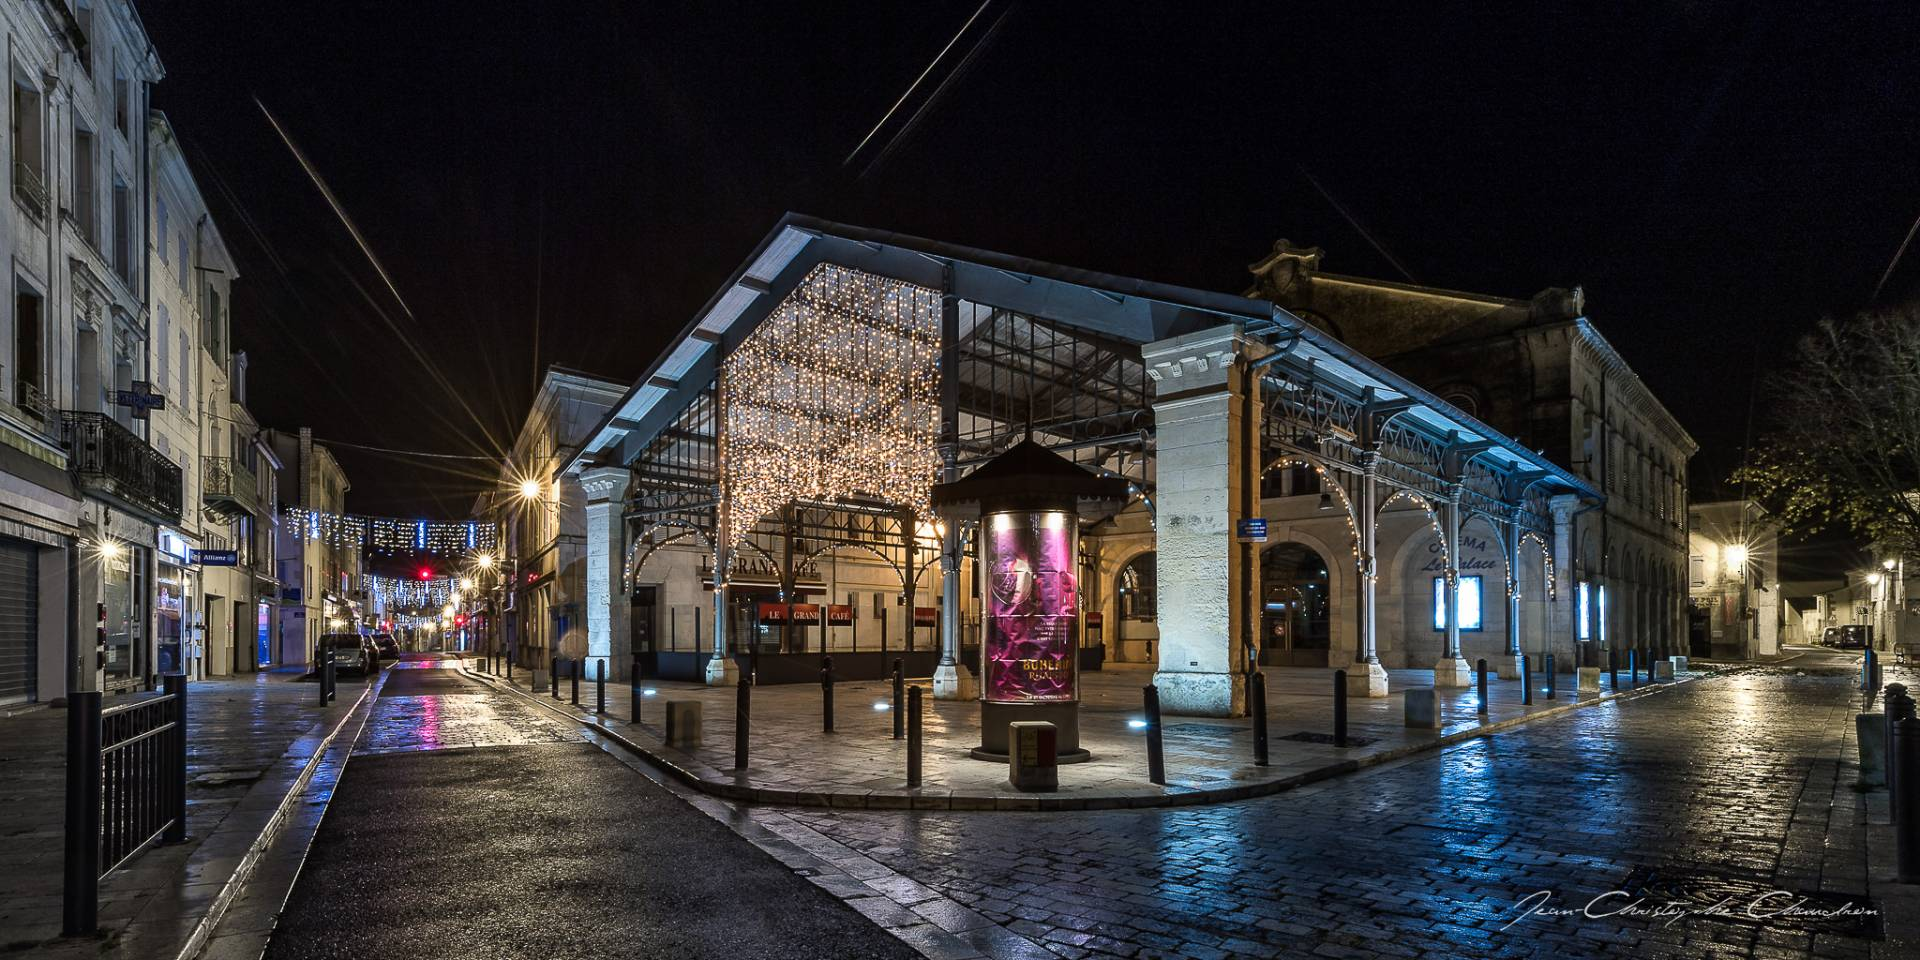 EXPOSITION «MADE IN SURGÈRES»